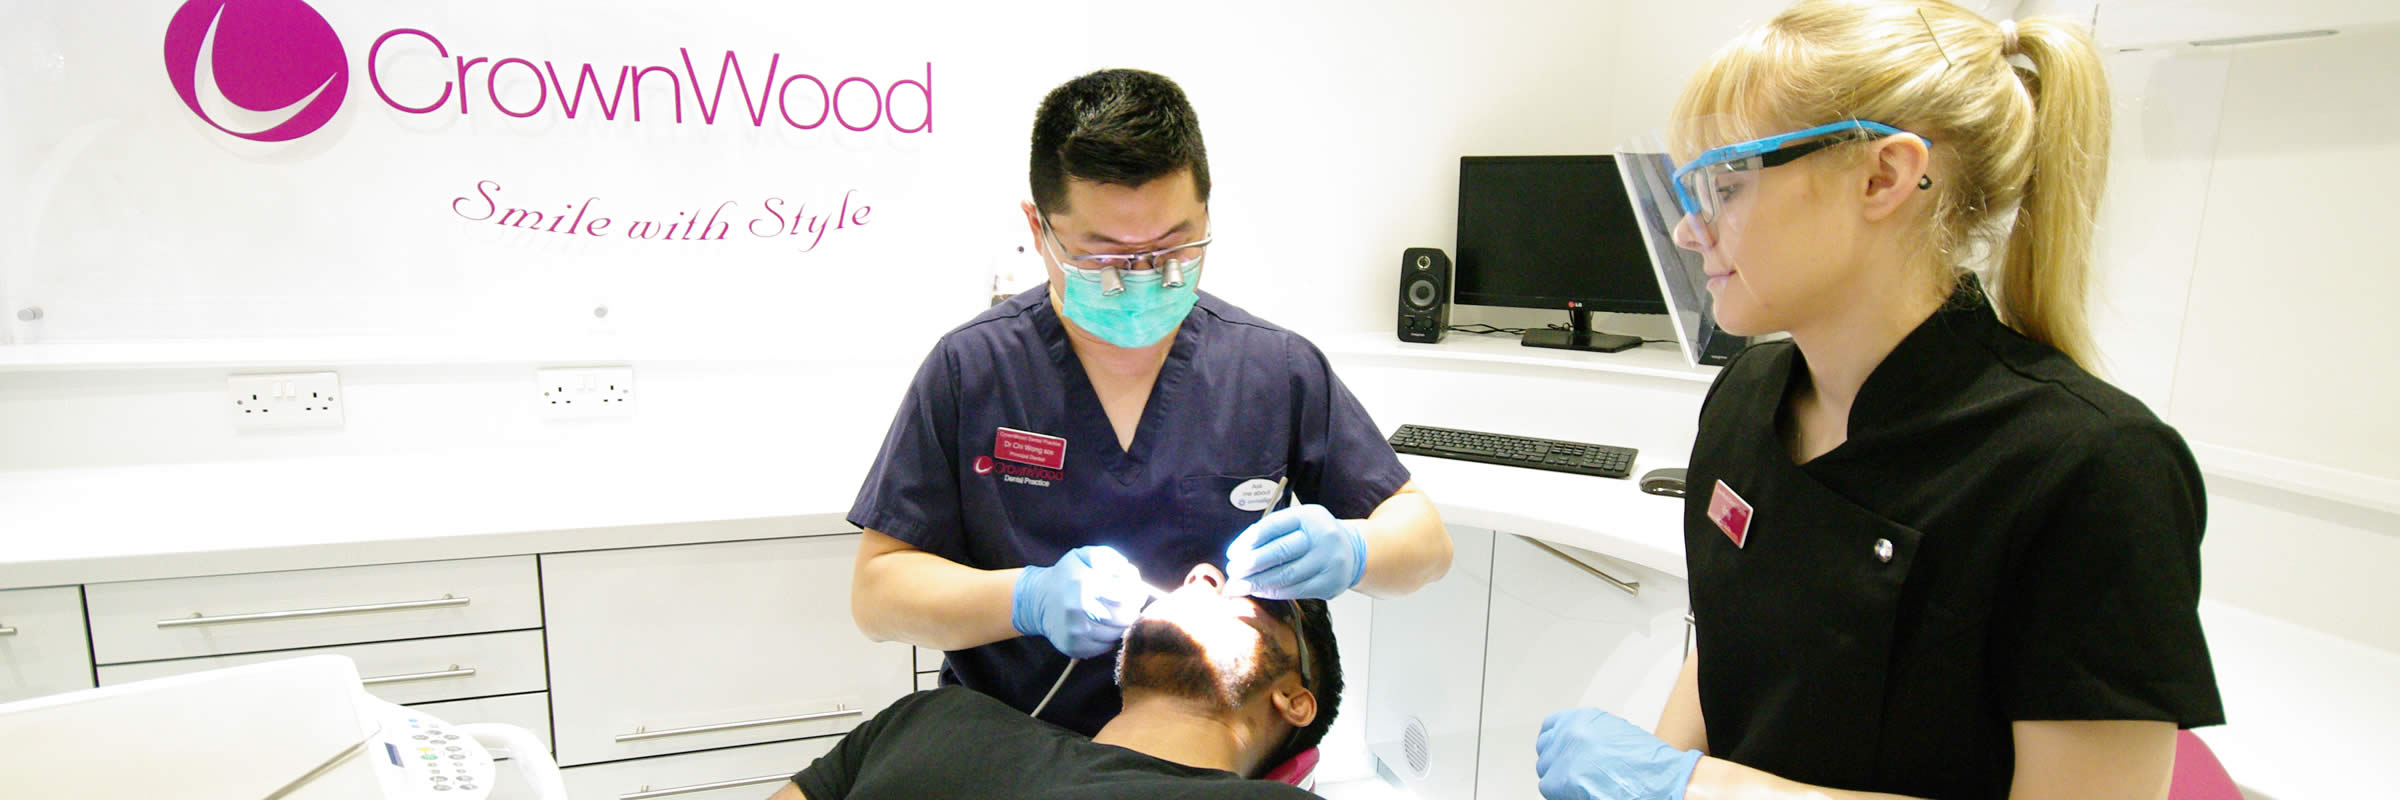 New Patients Exam just £45 at CrownWood Dental Practice in Bracknell